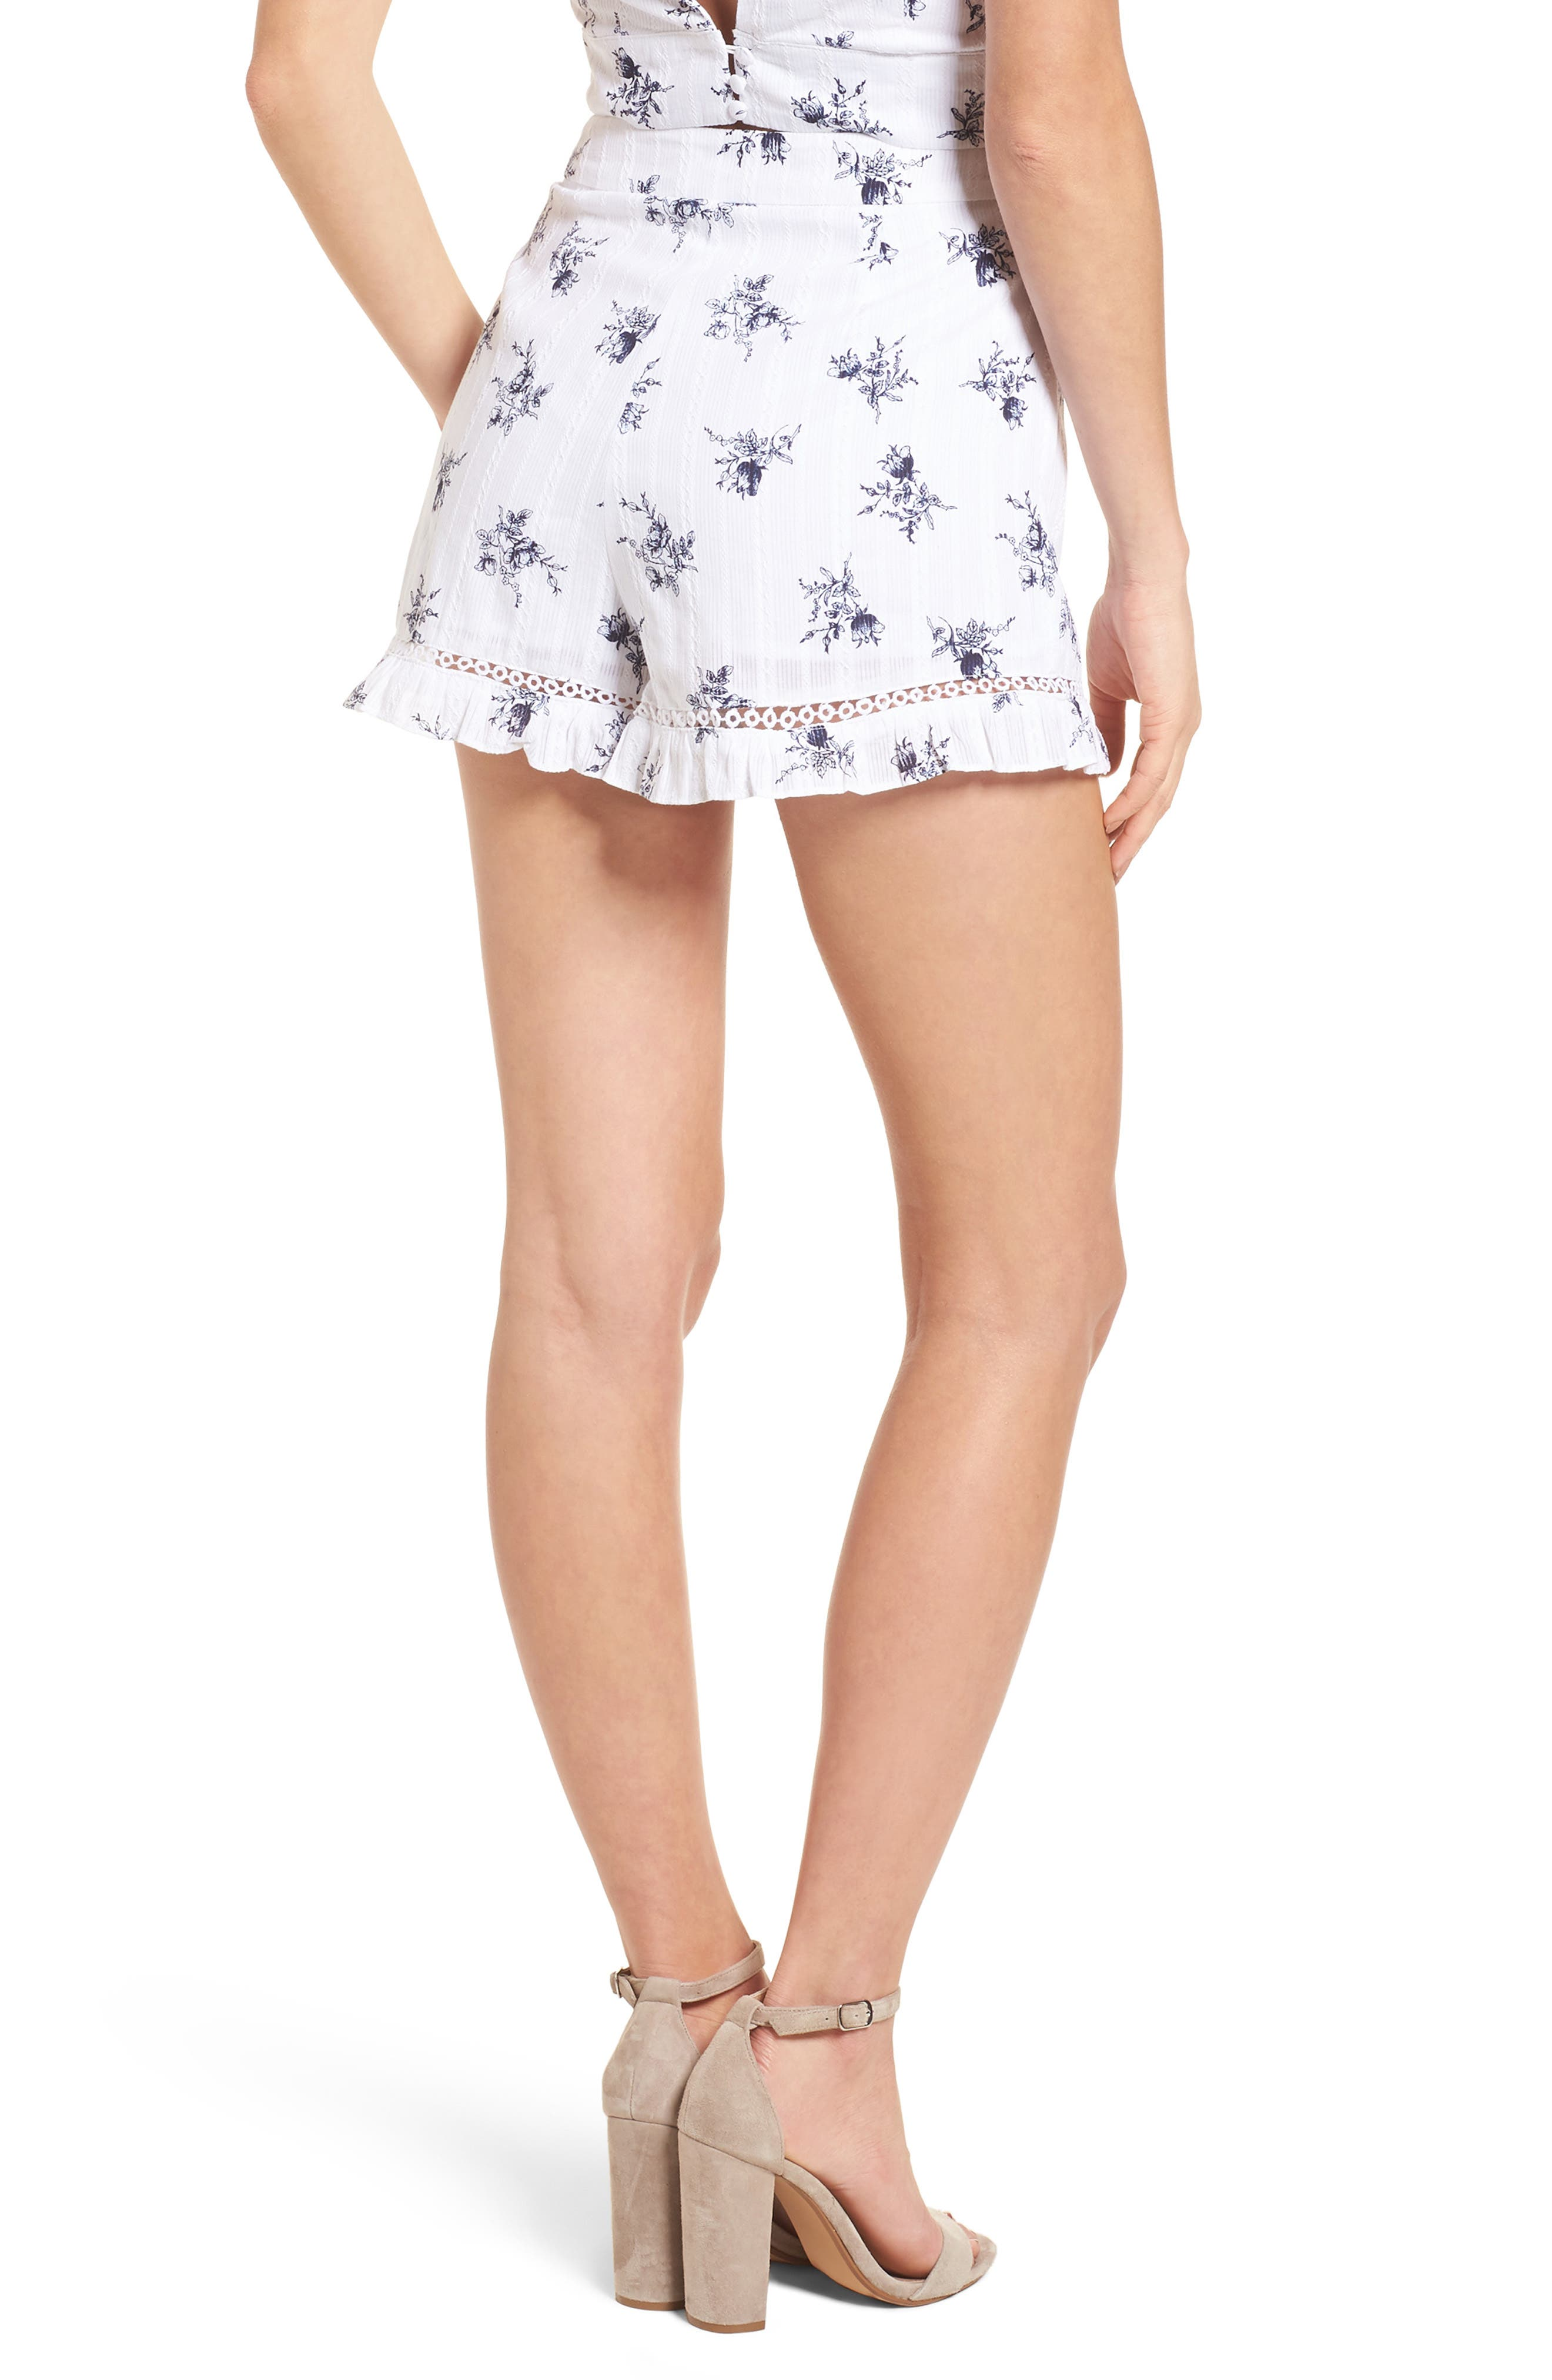 Ruffle Shorts,                             Alternate thumbnail 4, color,                             White/ Navy